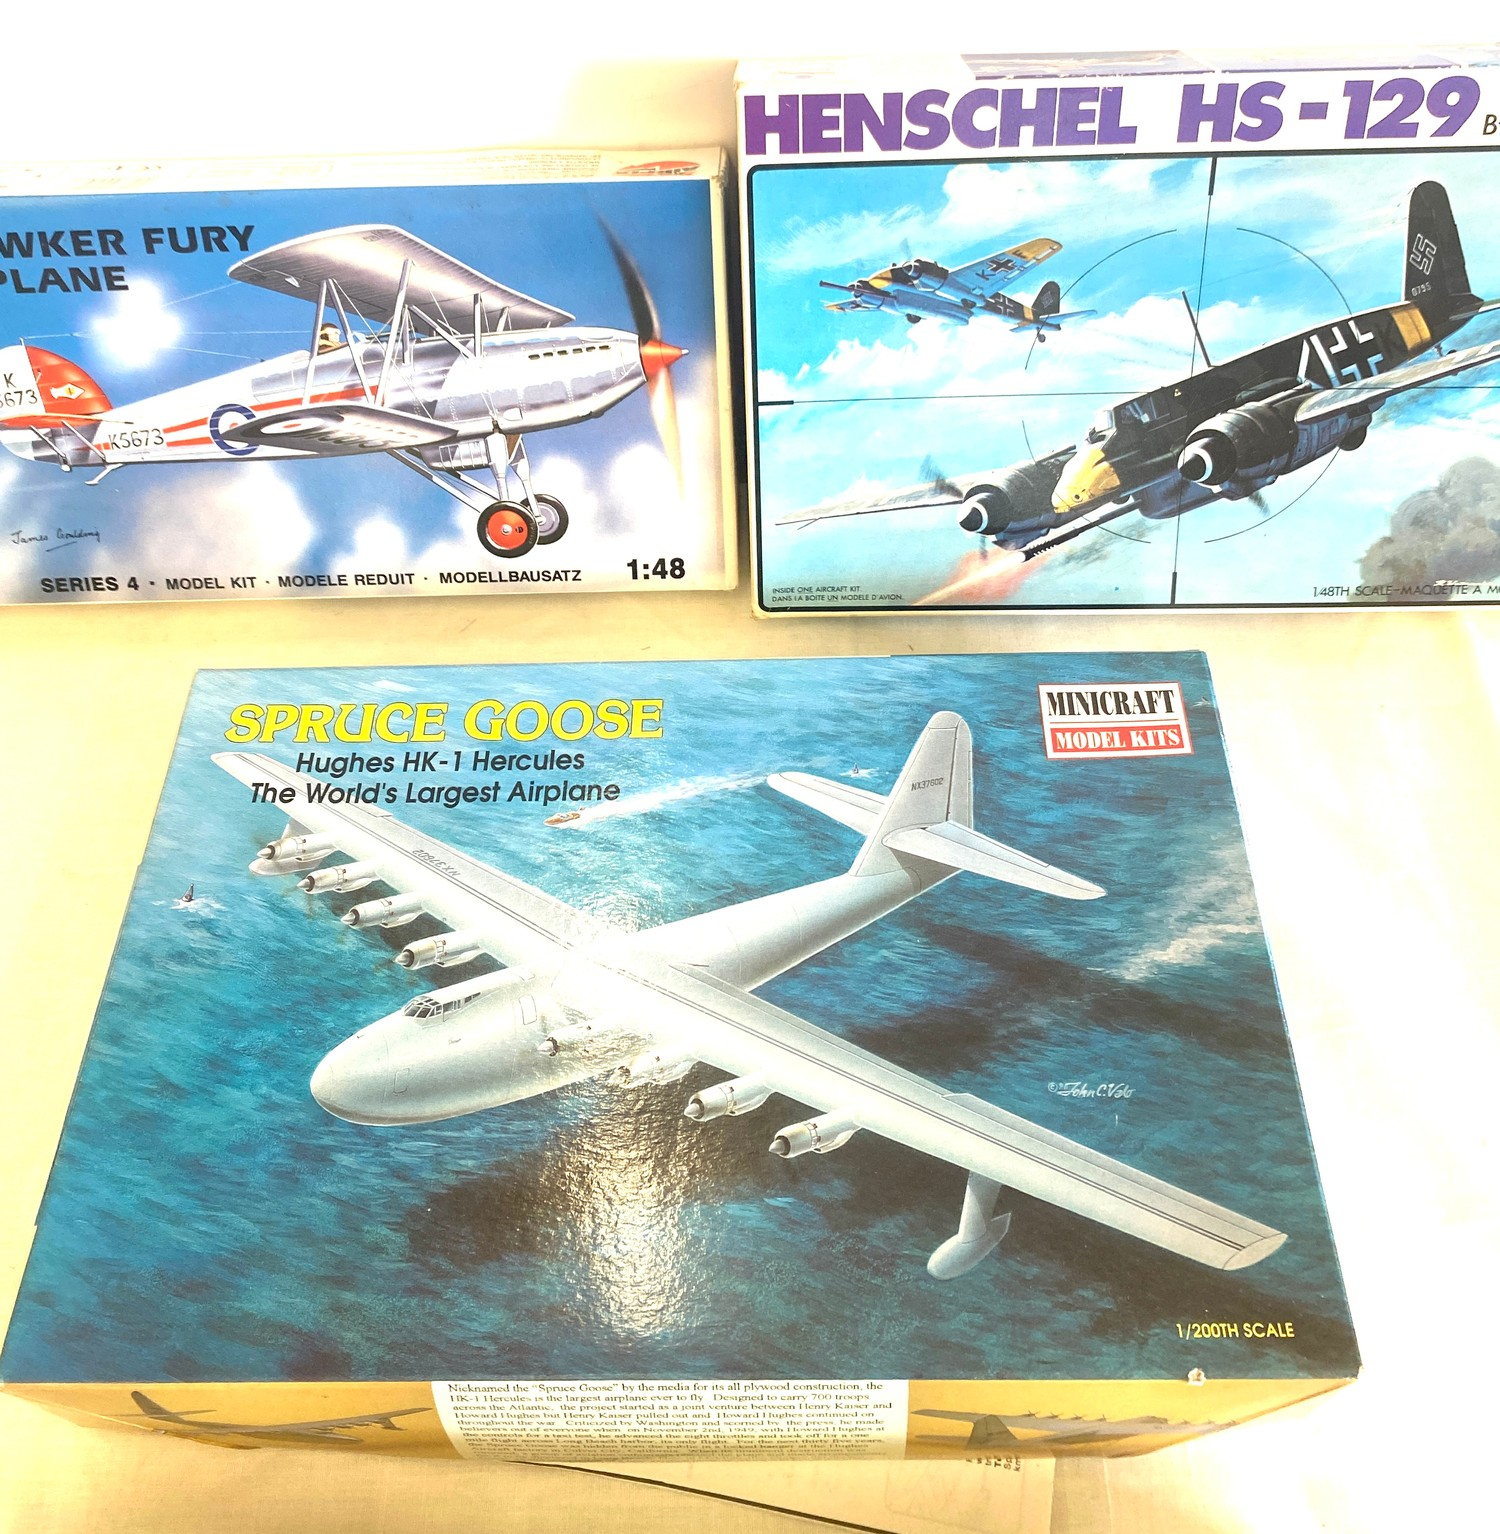 Selection of 4 boxed model air crafts includes, Henschel HS-129, Hawker Fury Biplane, Spruce Goose - Image 2 of 3